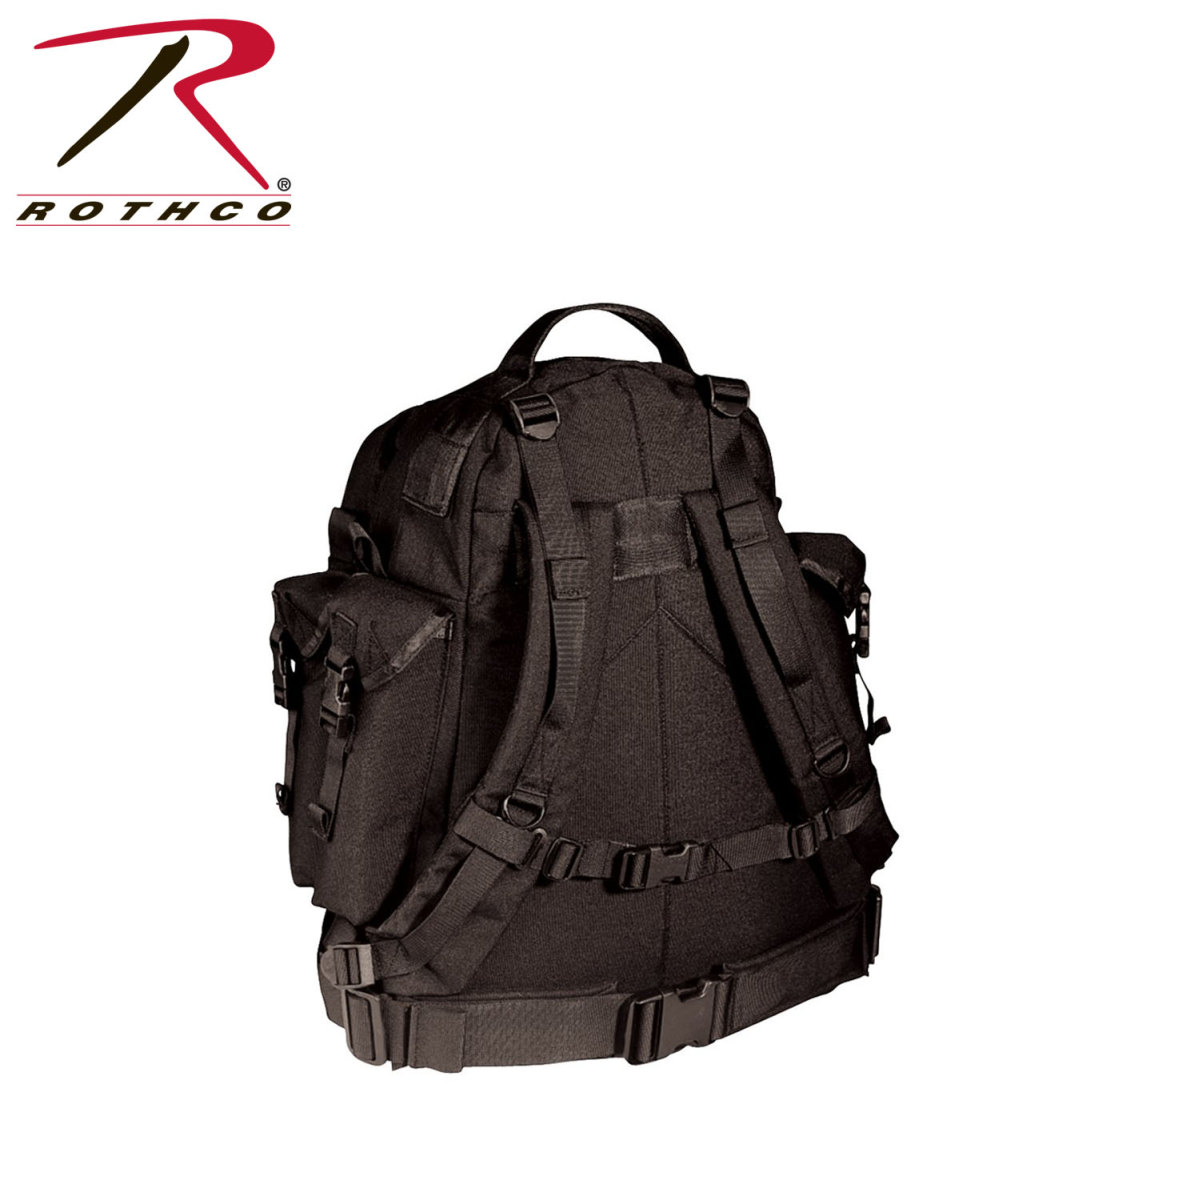 Backpacks & Packs\ Bags & Packs